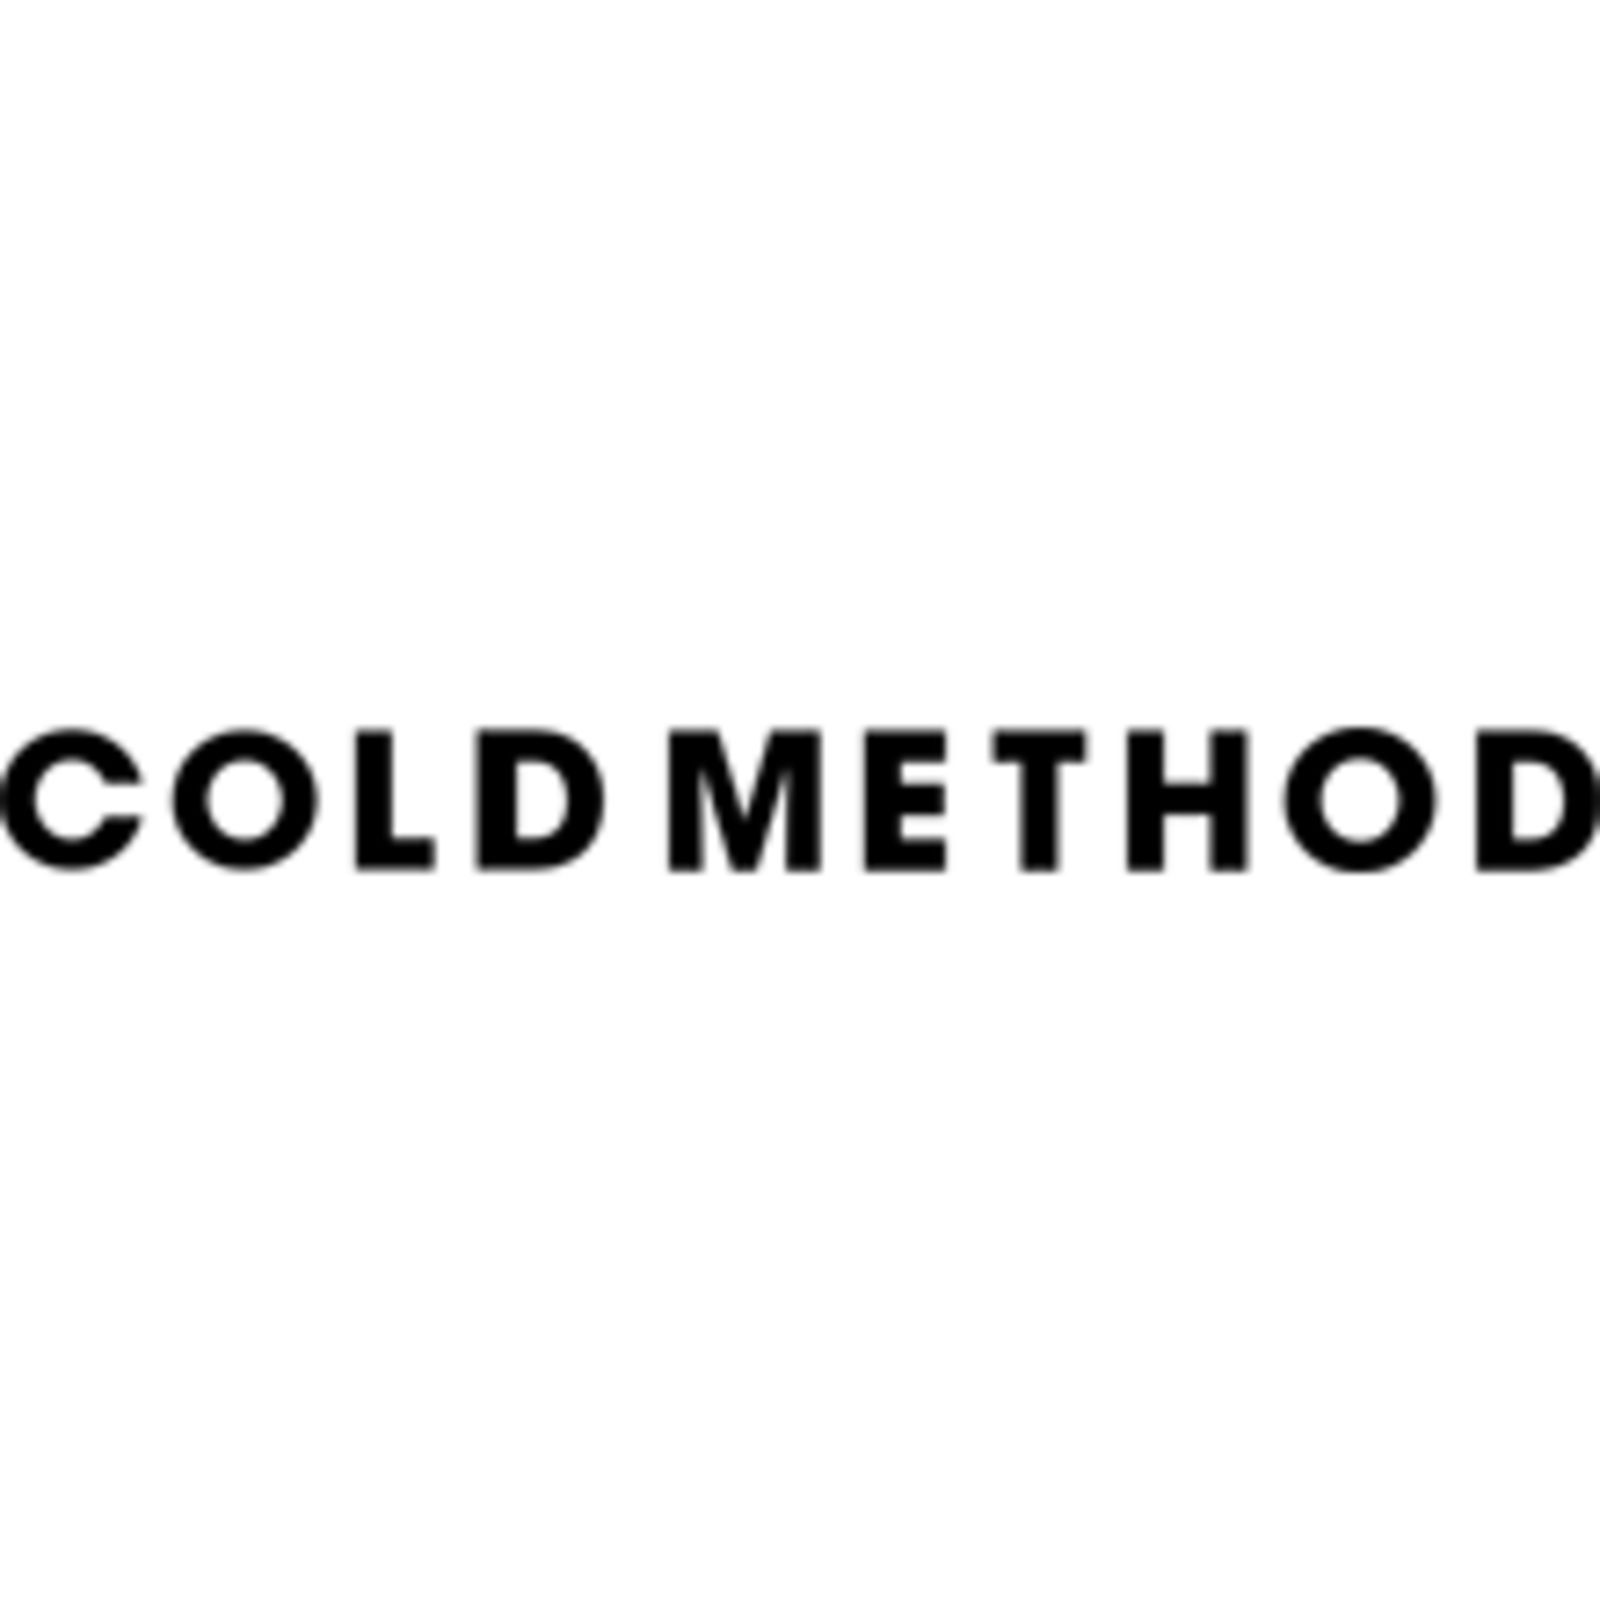 COLD METHOD